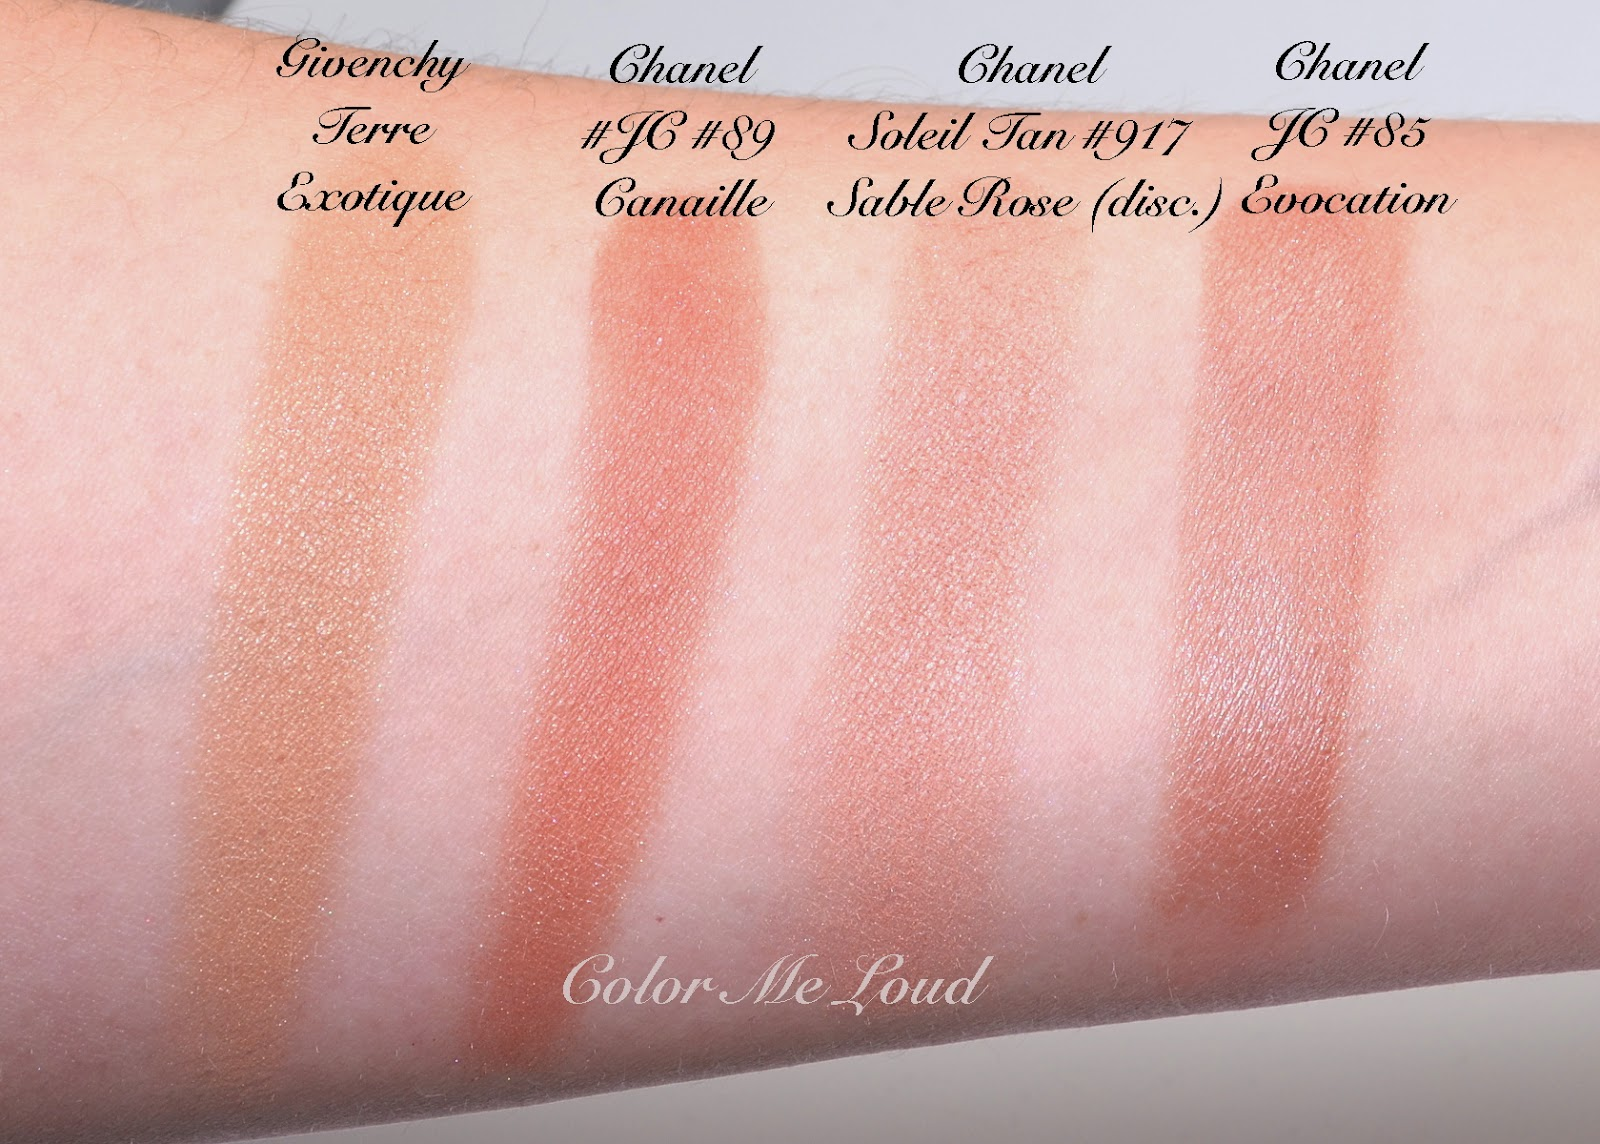 Chanel Joues Contraste #88 Vivacite, #89 Canaille, Review, Swatch ...